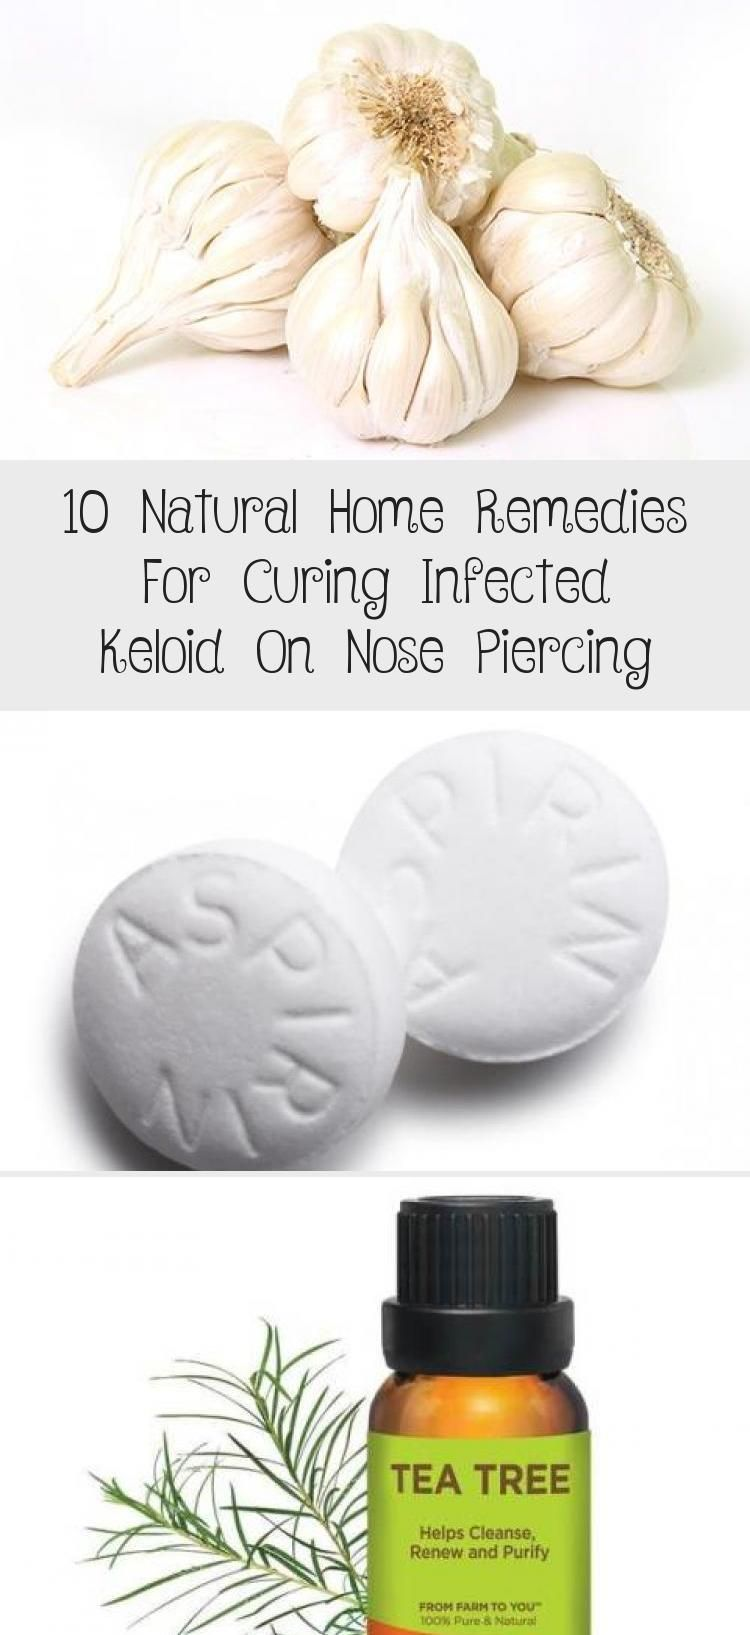 10 Natural Home Remedies For Curing Infected Keloid On Nose